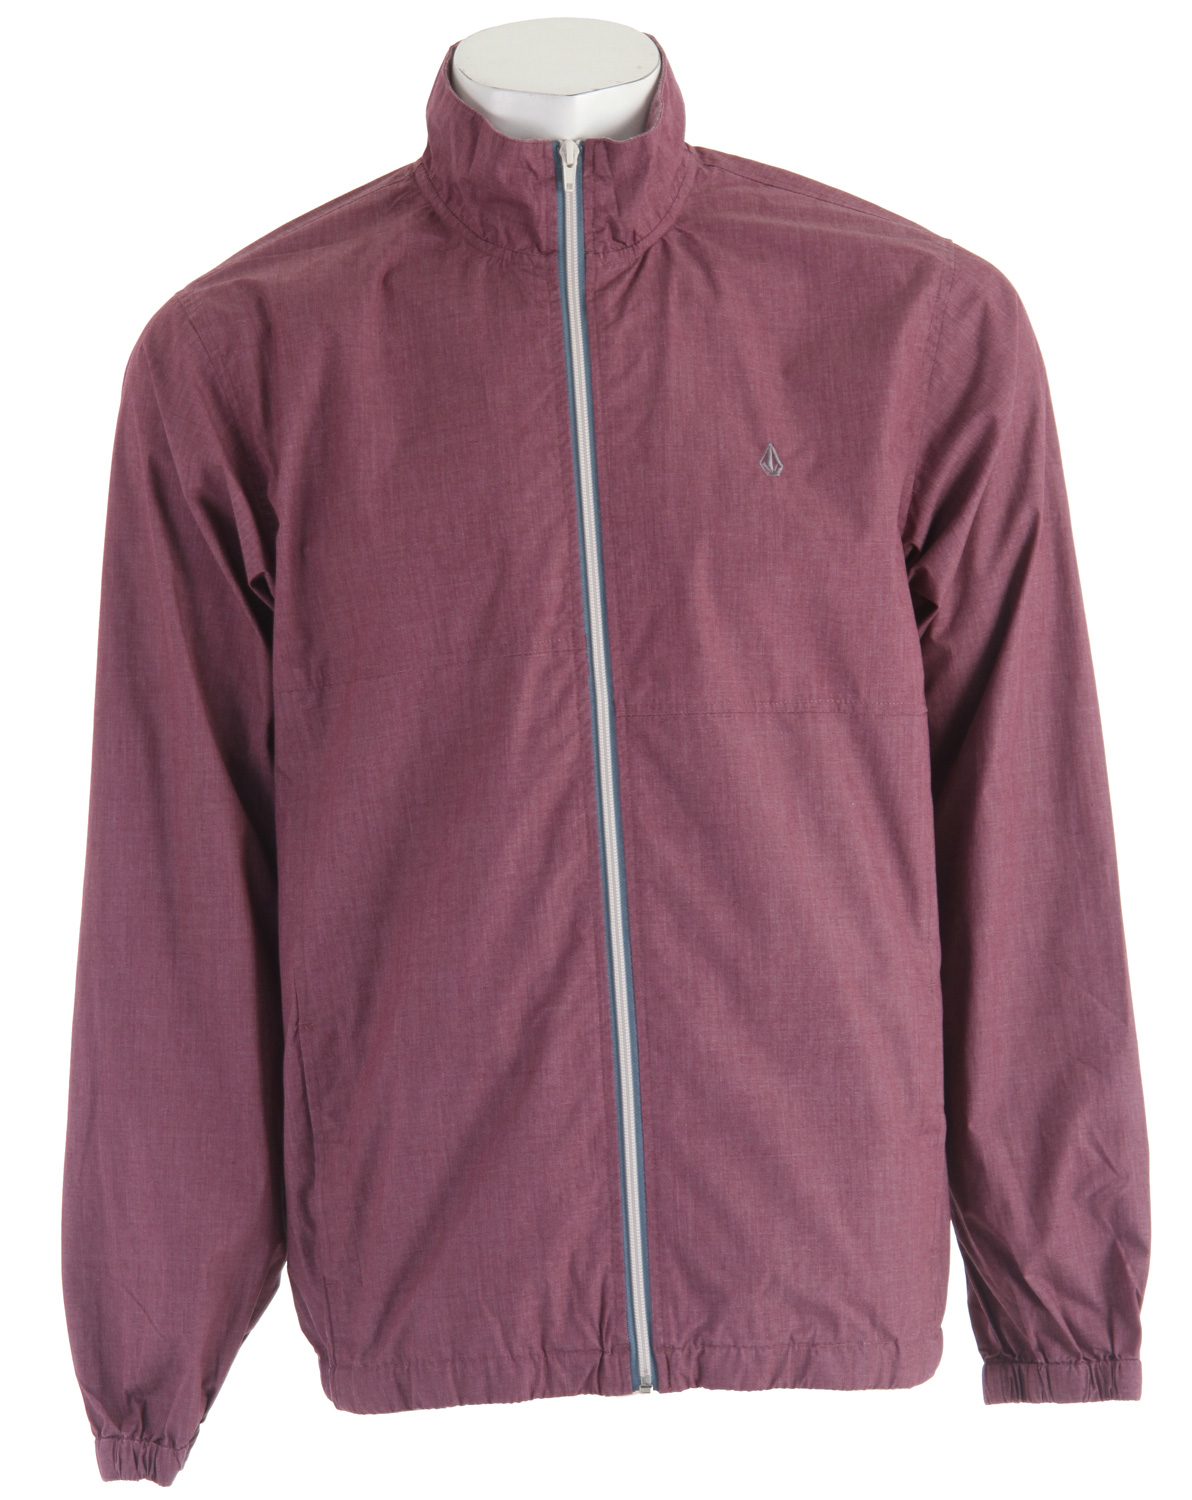 Surf Be ready for adventure when you walk out the door this season with the light and comfortable Volcom Faded Heather Jacket for men! This polyester/cotton blend mock neck windbreaker is part of Volcom's Core Collection and has elastic at the cuffs and waistband to keep the cold air out and the warm air in. When it's time for your next outdoor adventure, grab the Faded Heather jacket from Volcom and go!Key Features of the Volcom Faded Heather Jacket:  Mock neck windbreaker  2 color front zipper  Elastic cuff and waistband  Rib interior collar  Core Collection  65% Polyester/35% Cotton Poplin w/ 600MM - $41.95